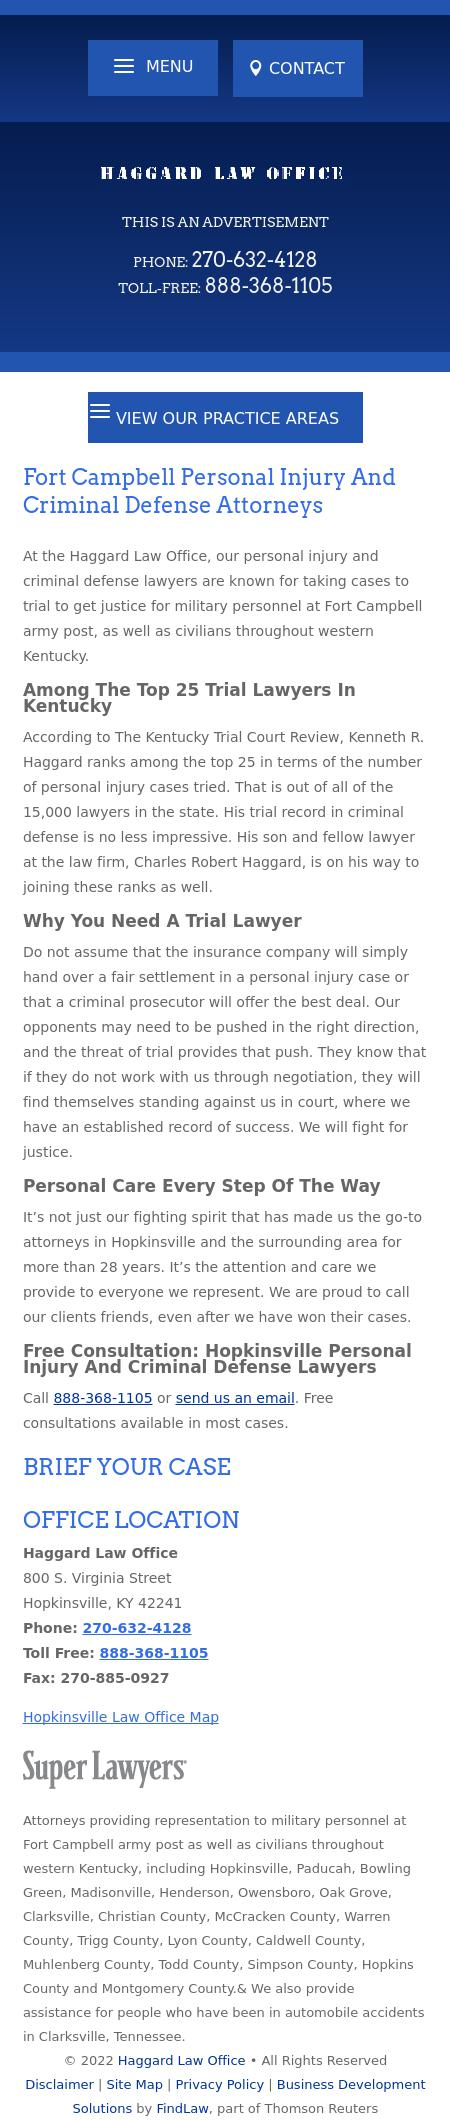 Haggard Law Office - Hopkinsville KY Lawyers